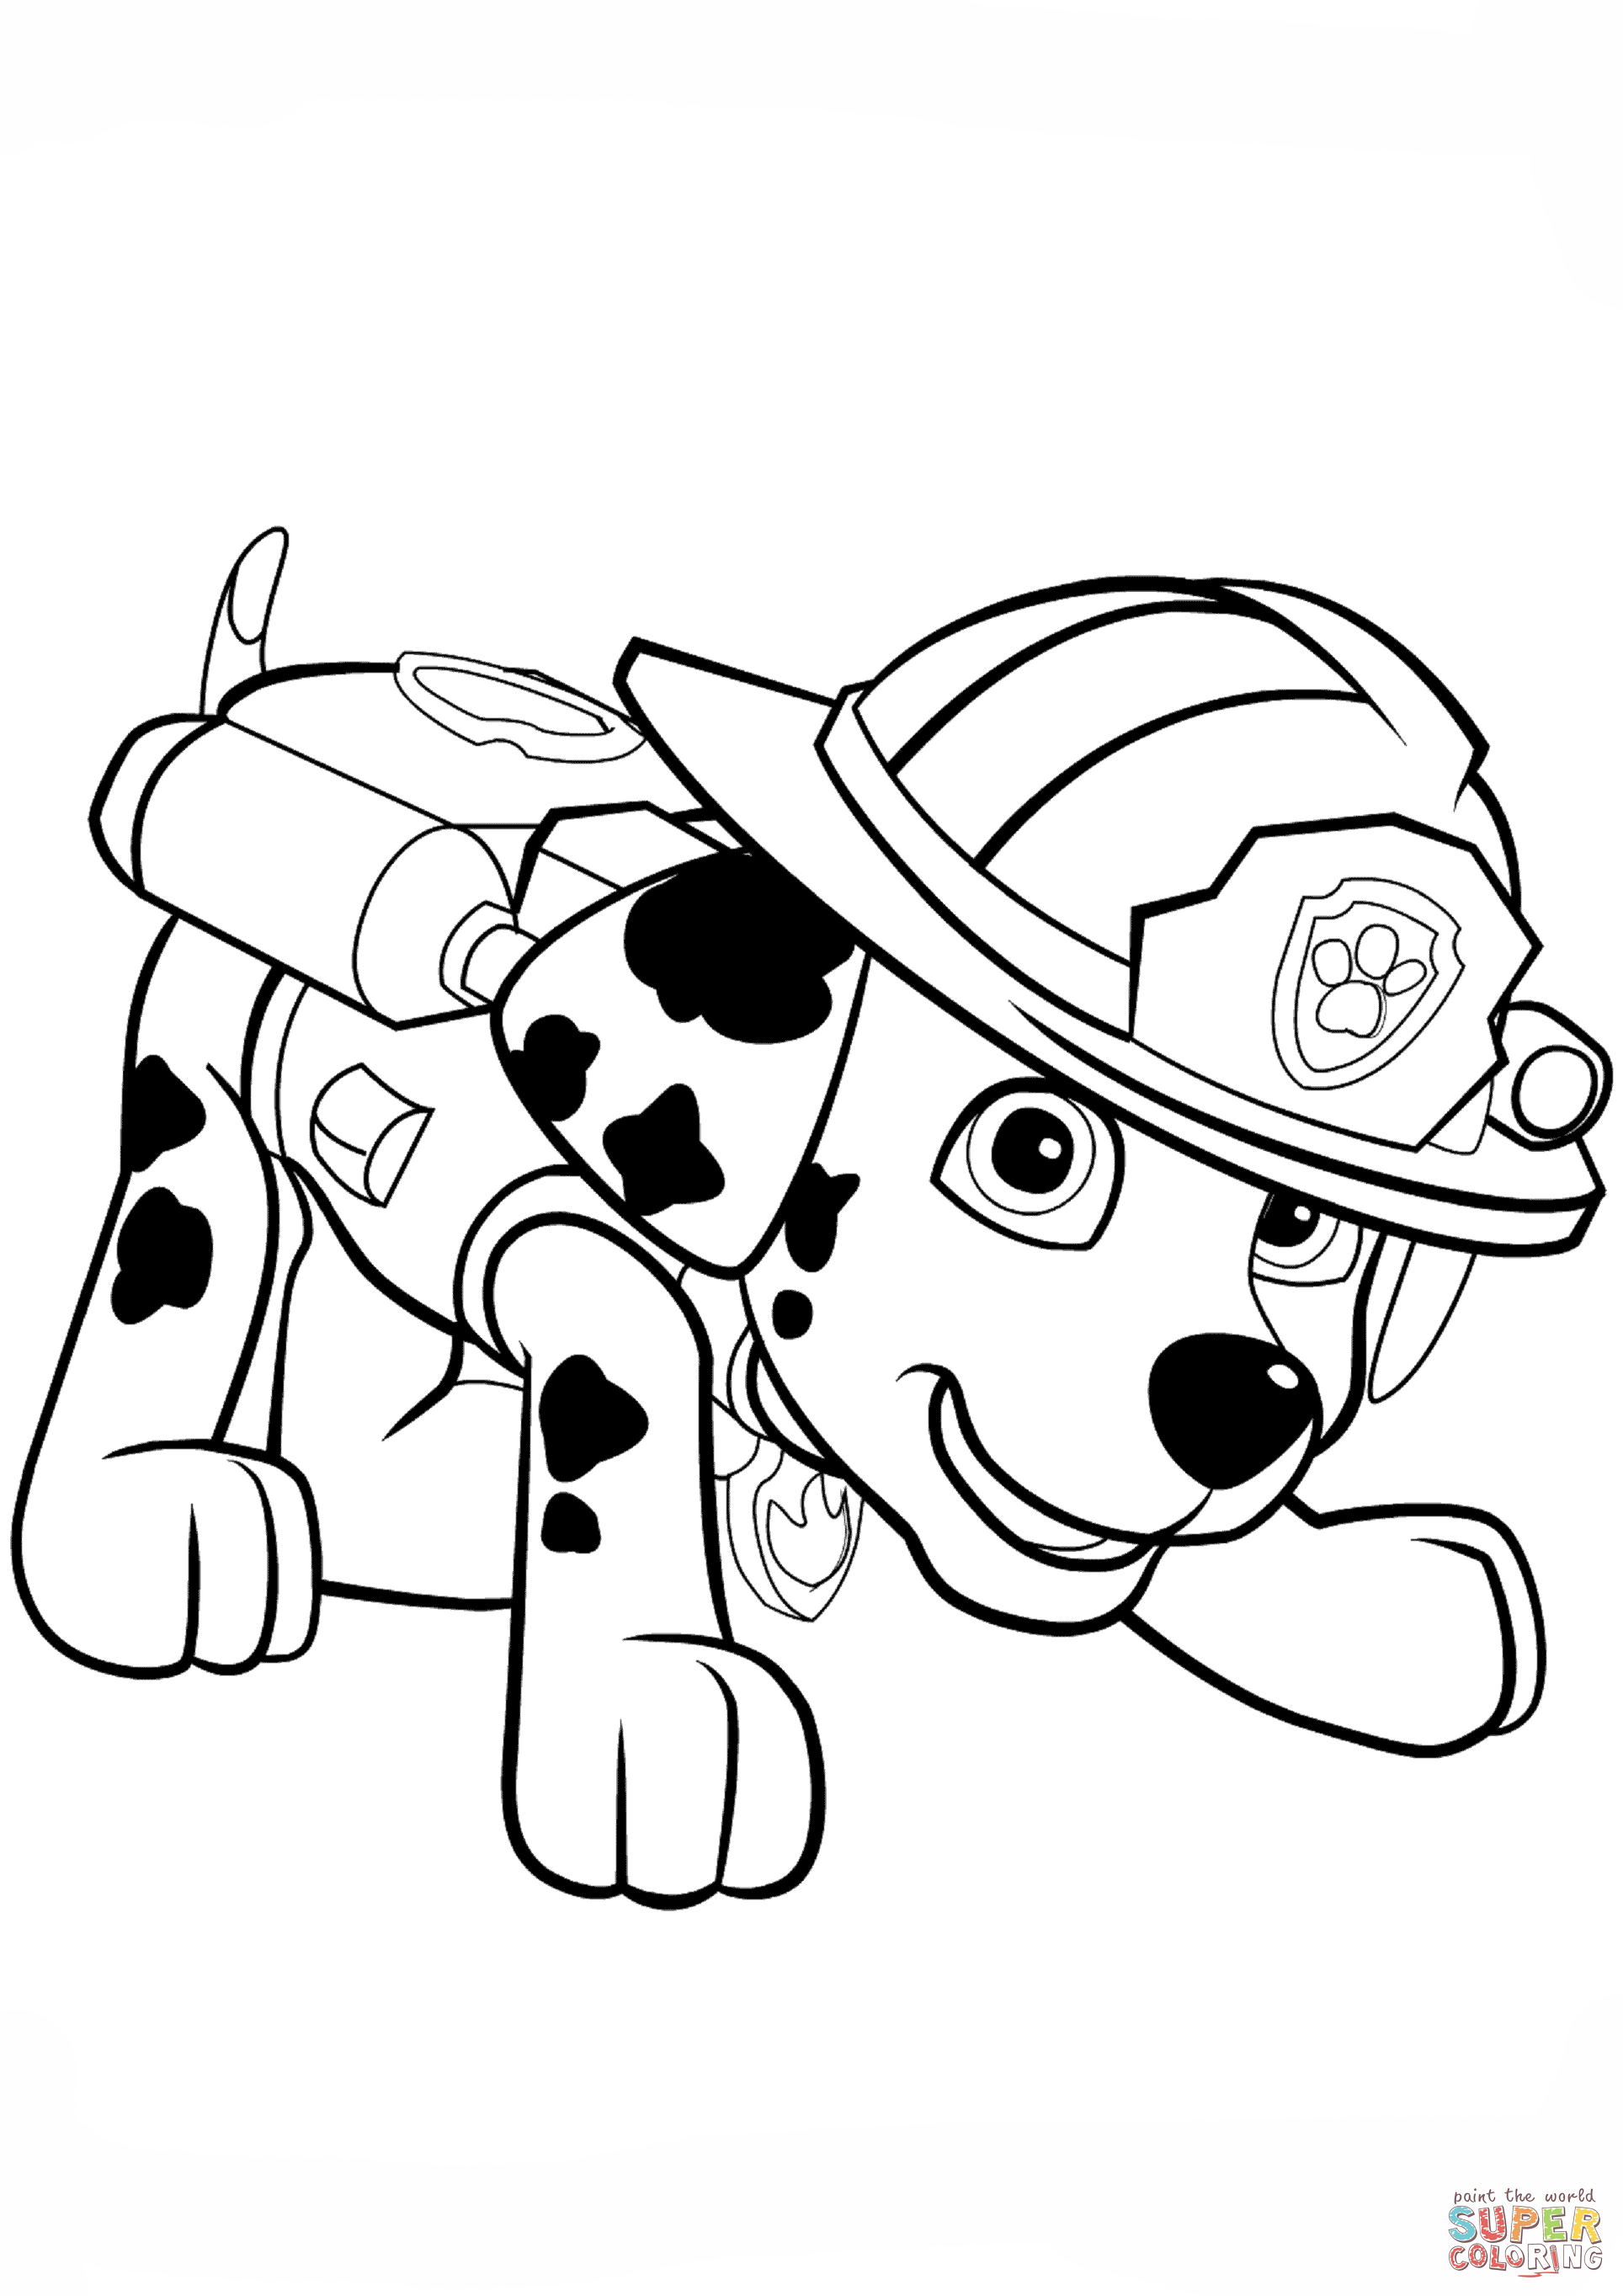 Marshall PAW Patrol Coloring Pages Printable | print | Pinterest ...